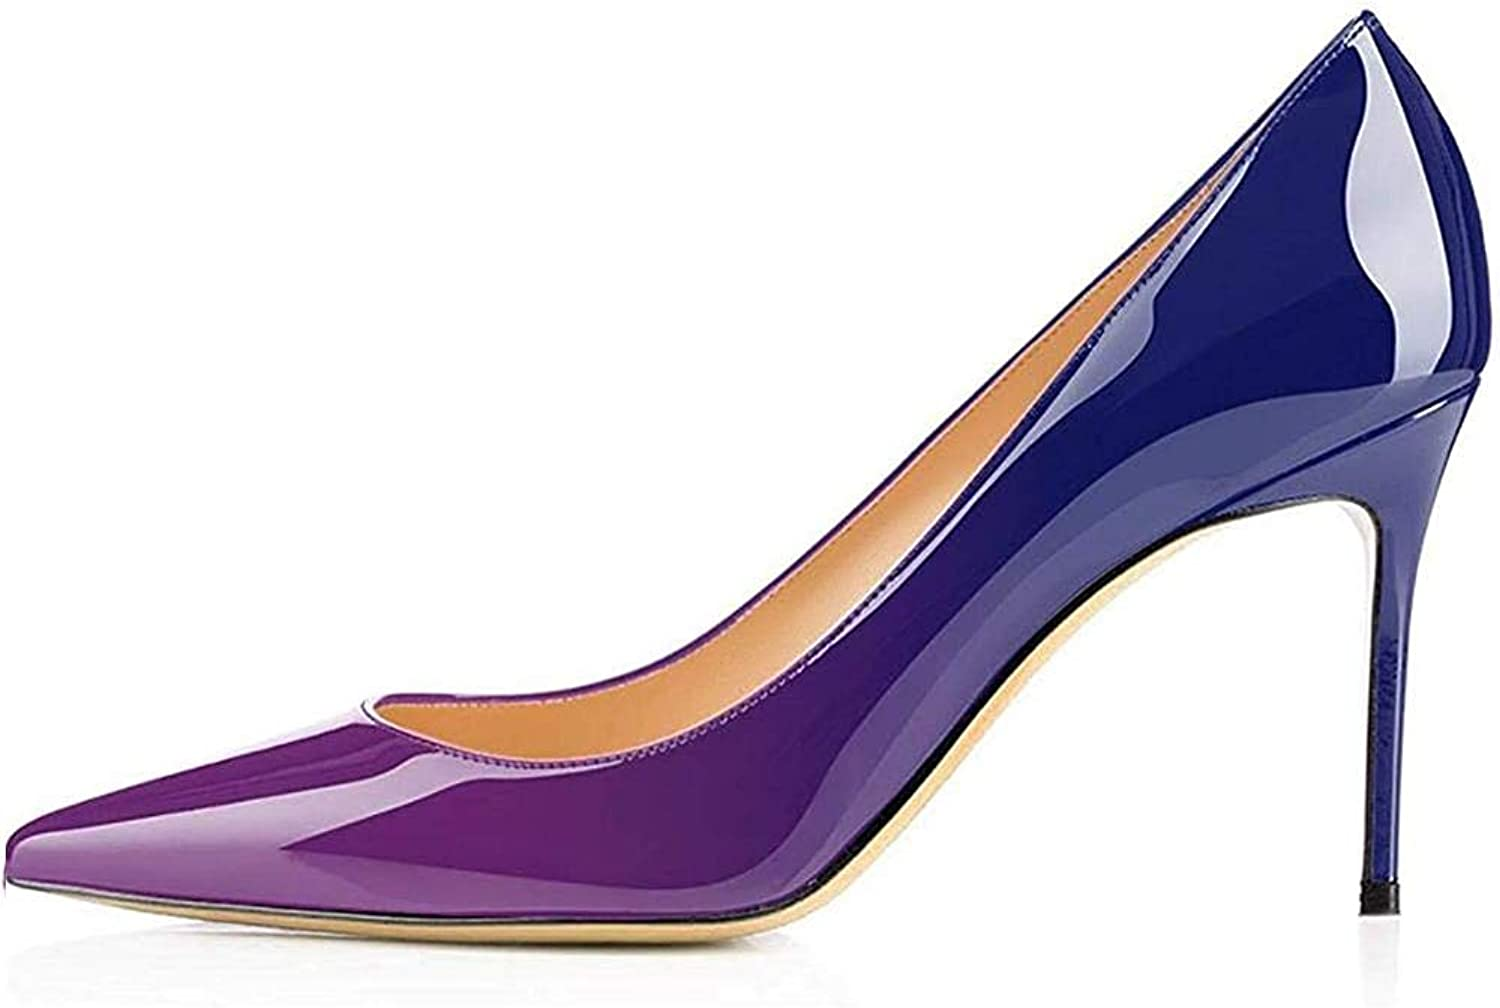 Kmeioo Middle Heels, Women's Sexy Stiletto shoes Pointy Toe Slip-On Office Pumps for Party Dress